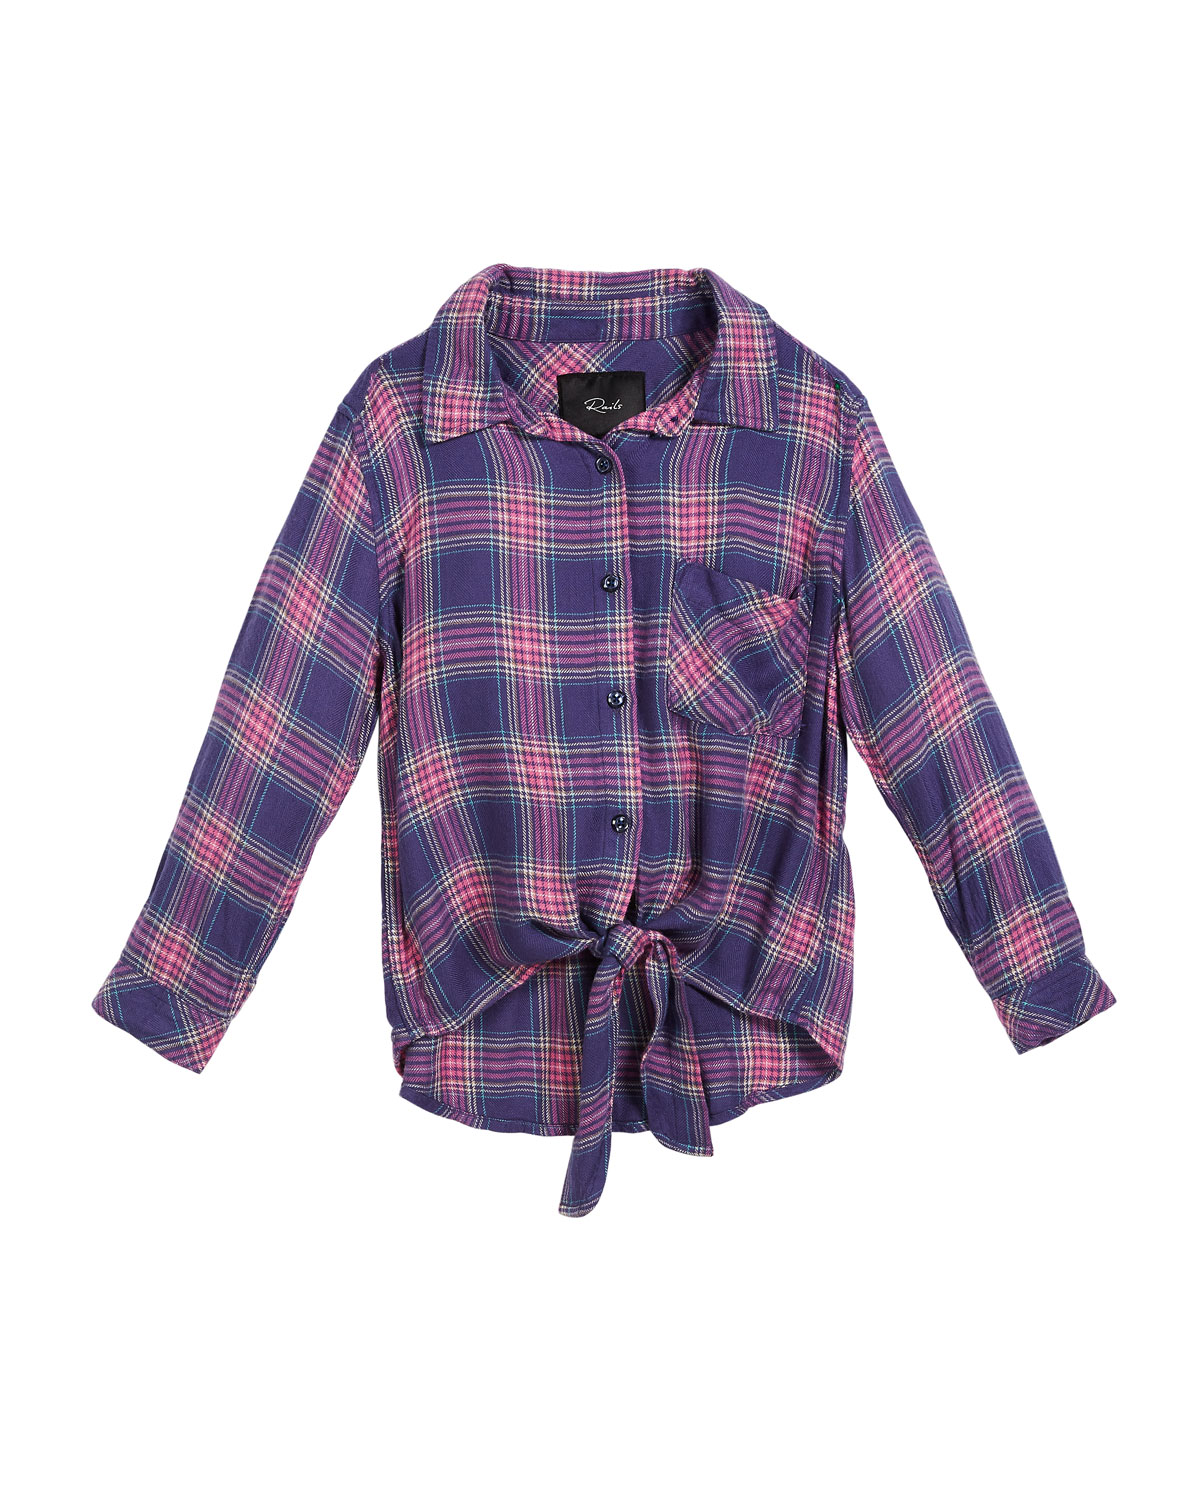 Valerie Plaid Tie-Front Top, Size 6-14